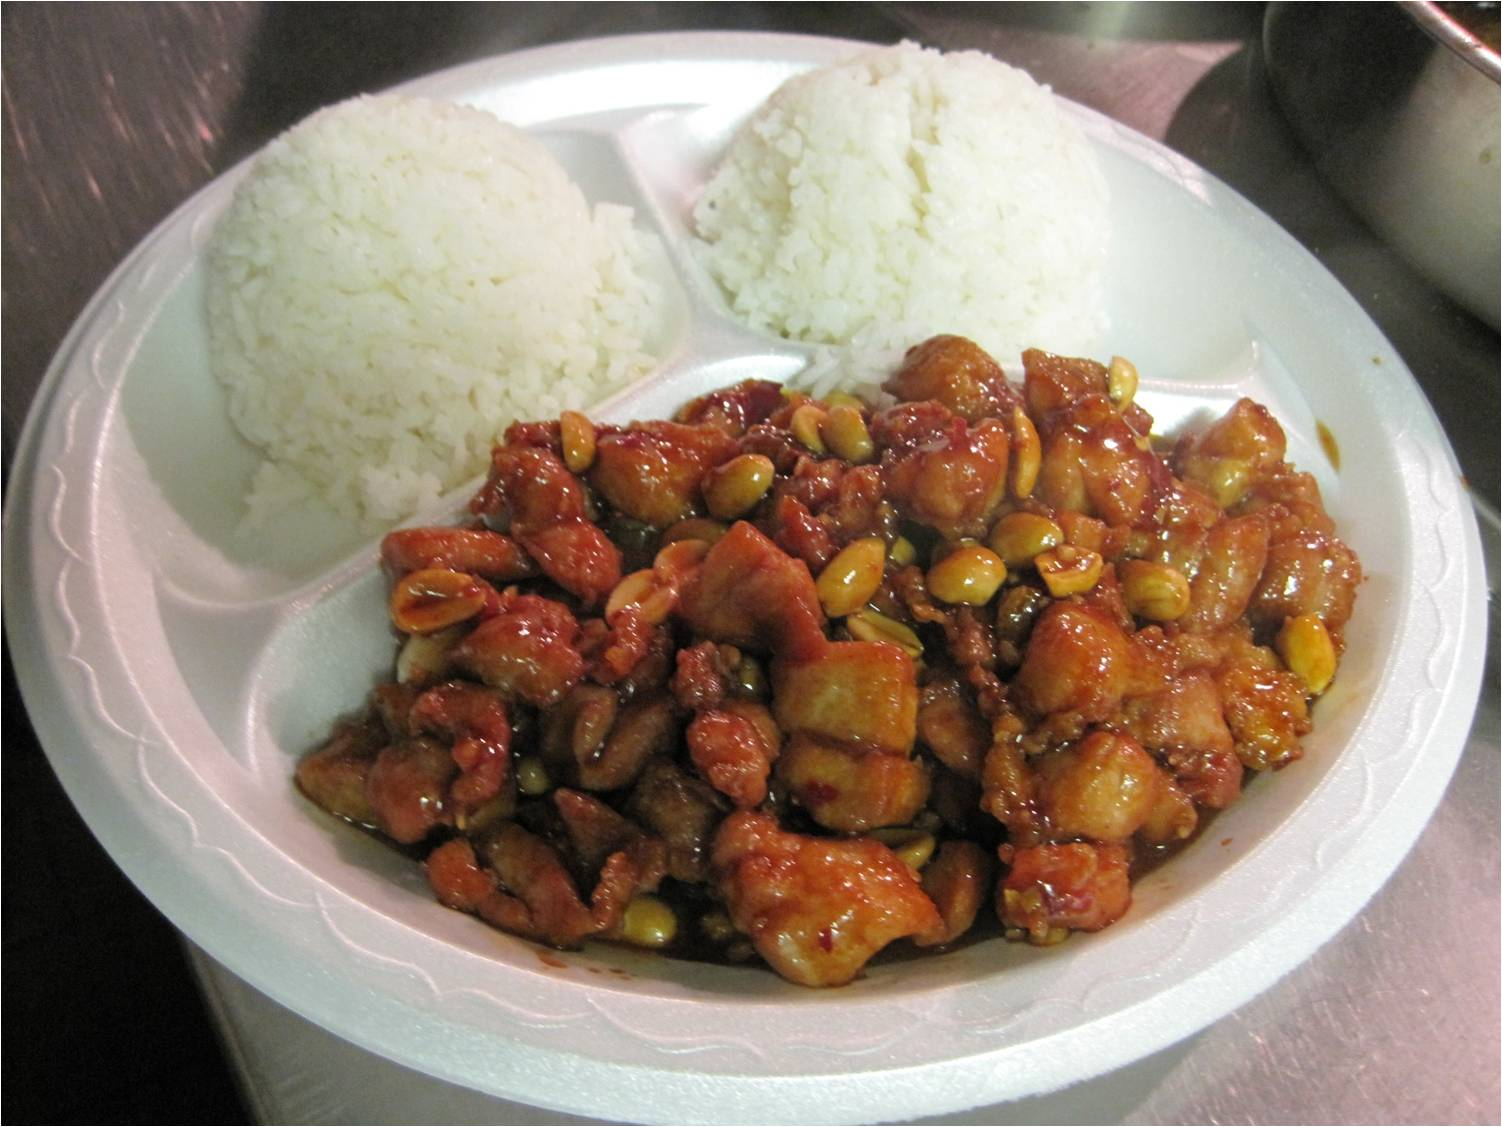 New dynasty chinese restaurant chinese food american for Asian american cuisine